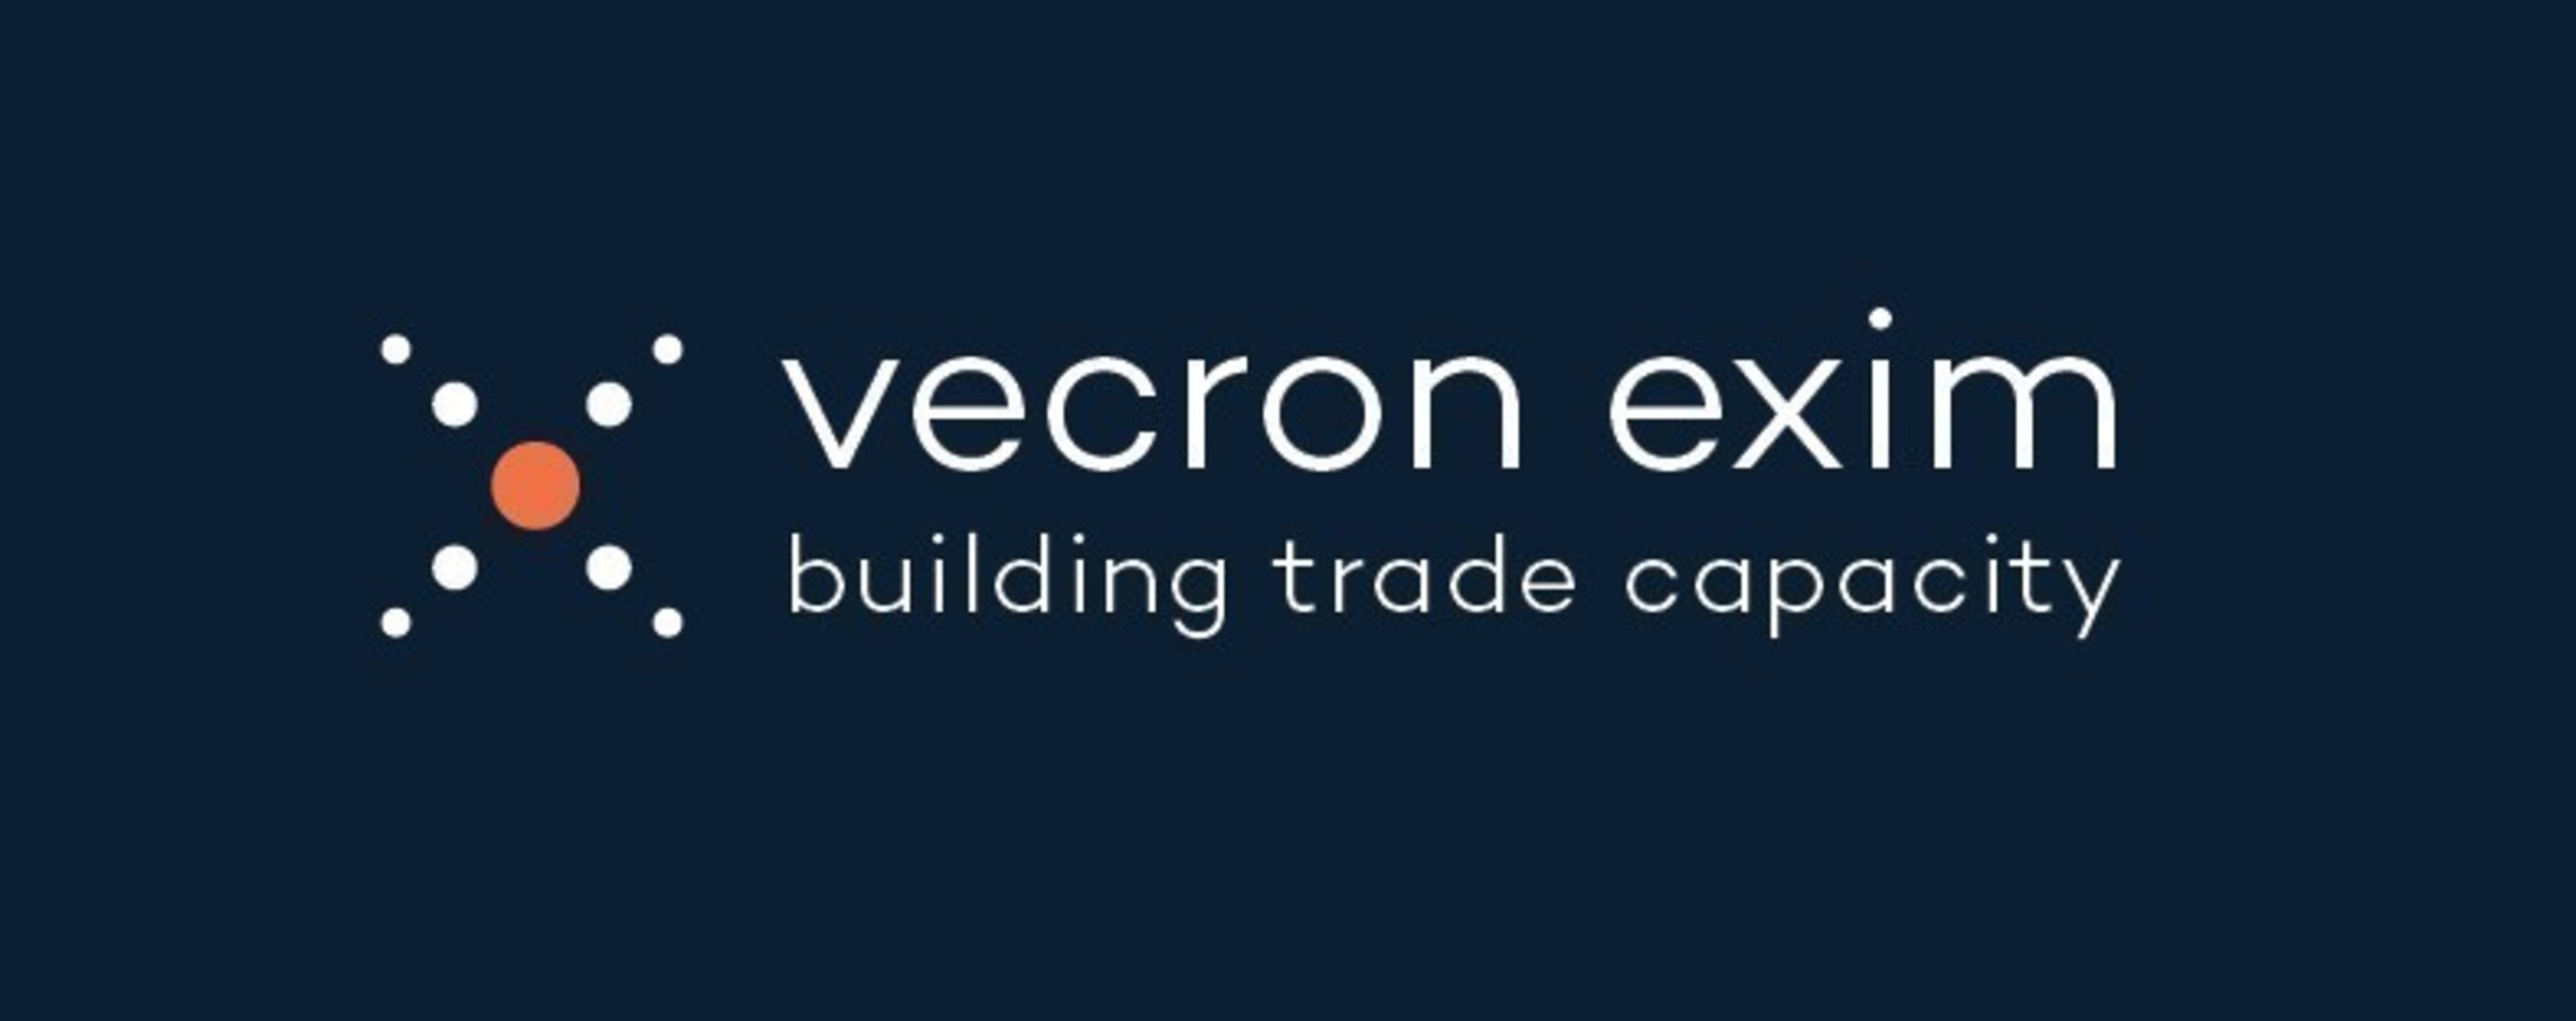 VLG Launches New Trade Finance Business Unit Vecron Exim: offering new finance products